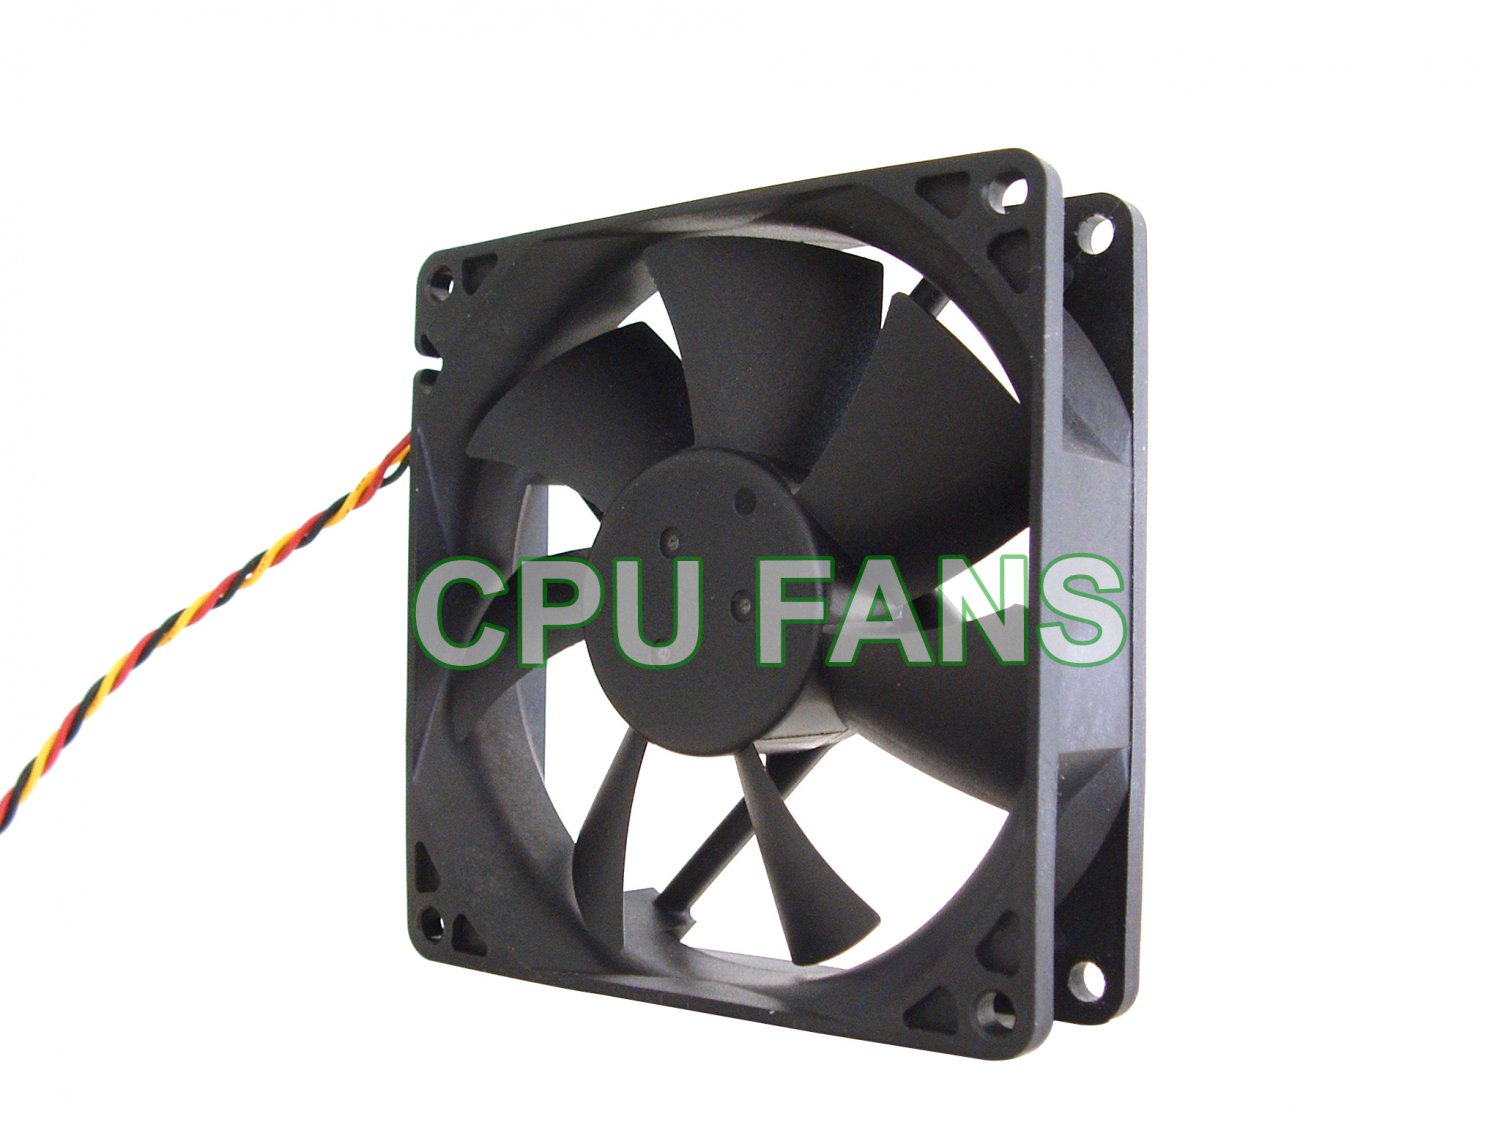 HP Pavilion A1520N PC Case Fan EX272AA EX272AAR System Cooling Fan